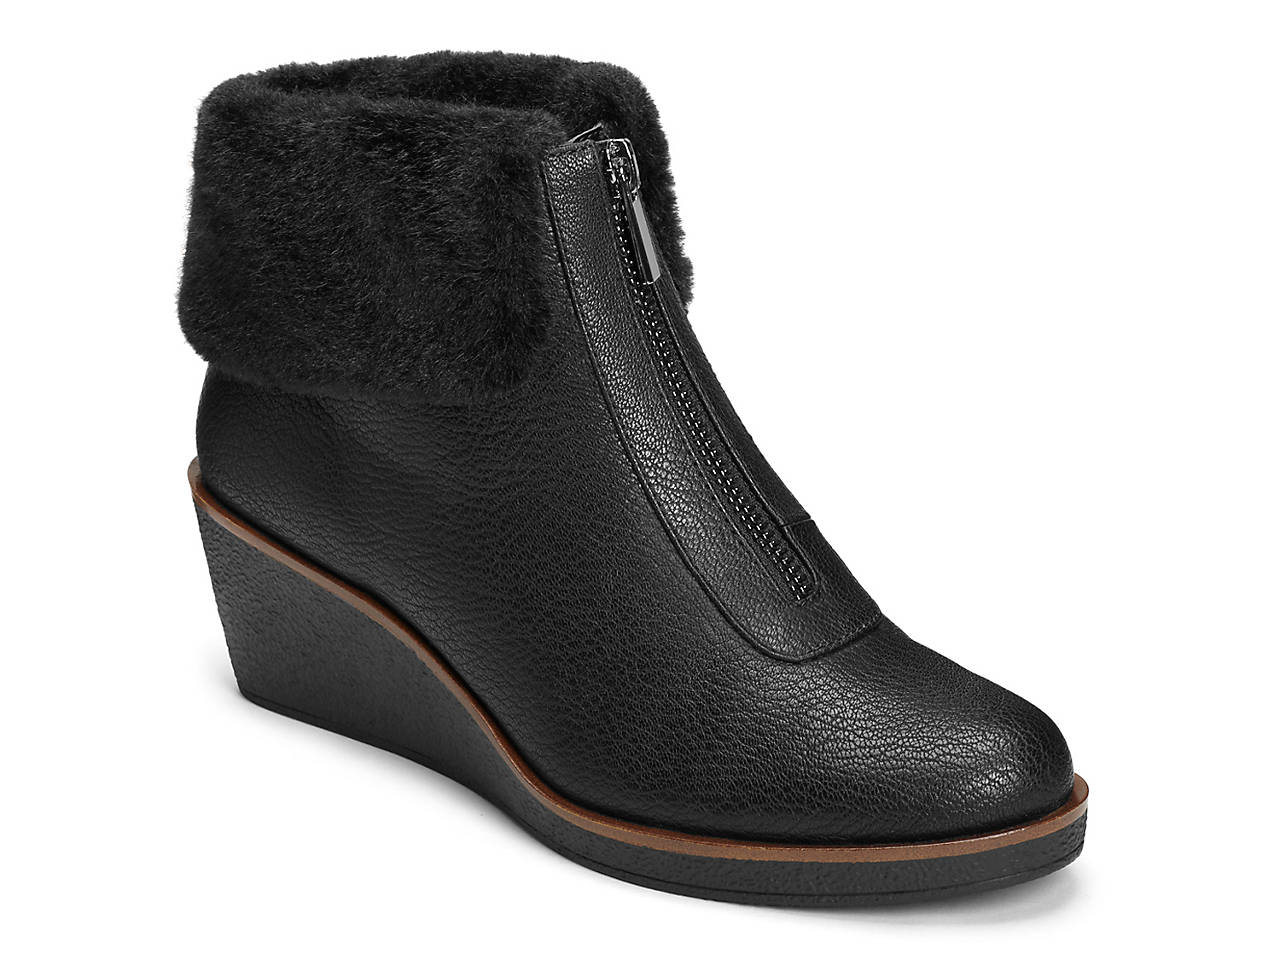 f6fcb69e523 A2 by Aerosoles Integrity Wedge Bootie Women s Shoes